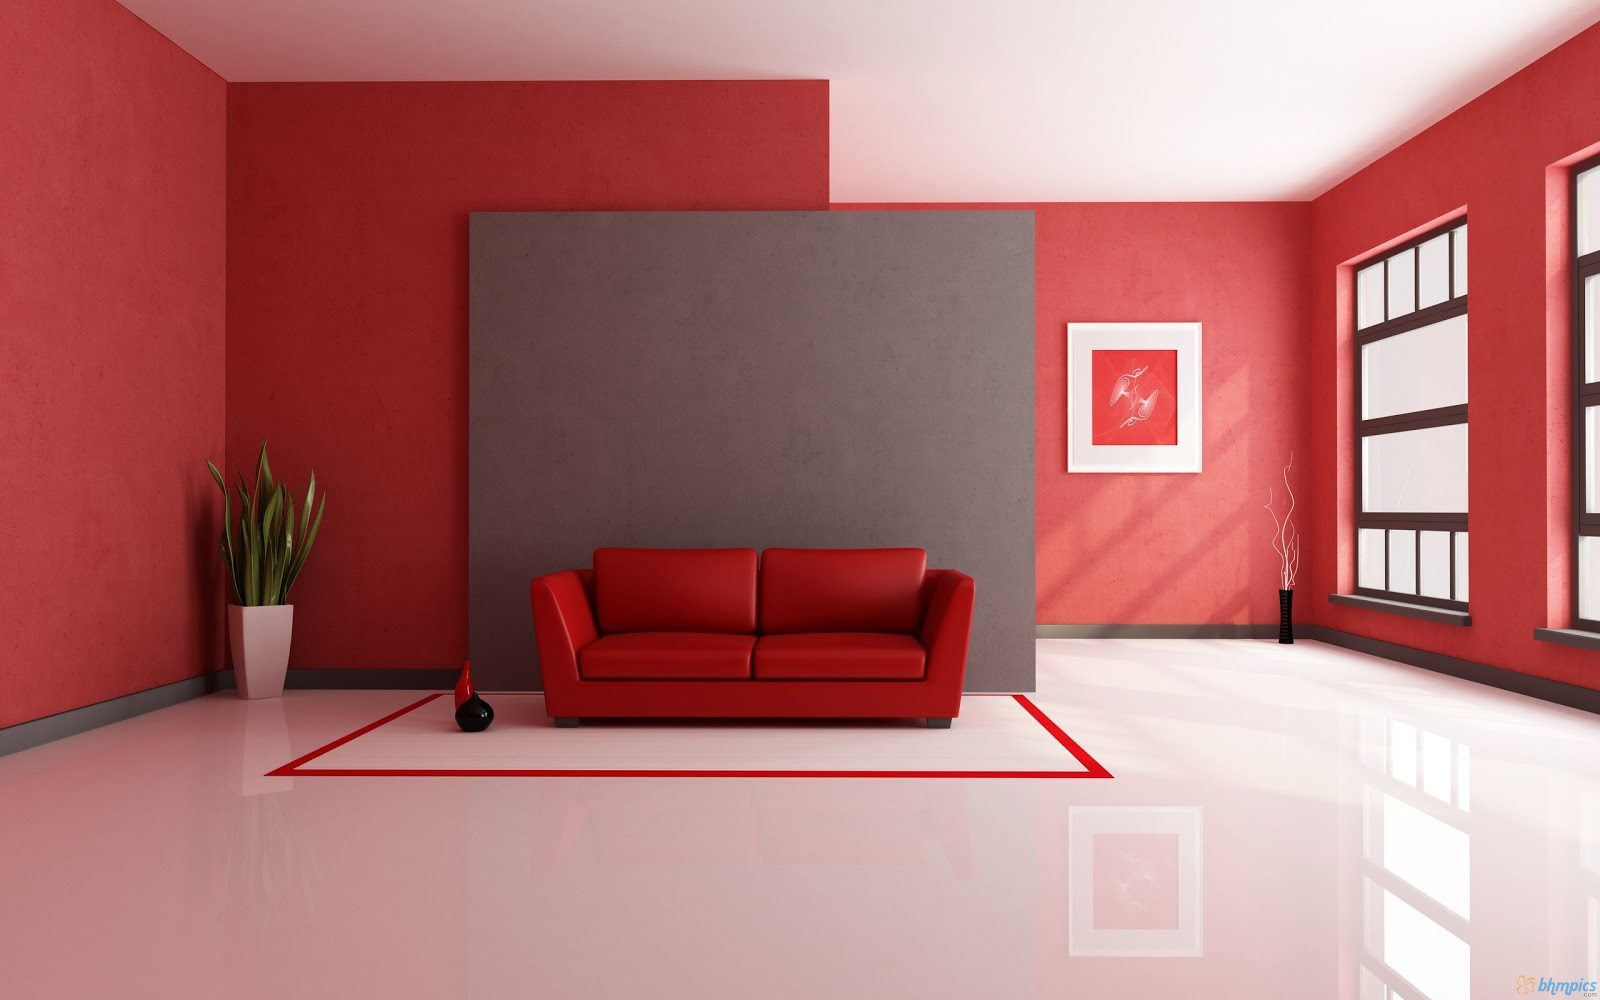 Fabulous Interior Design Red Walls 1600 x 1000 · 134 kB · jpeg